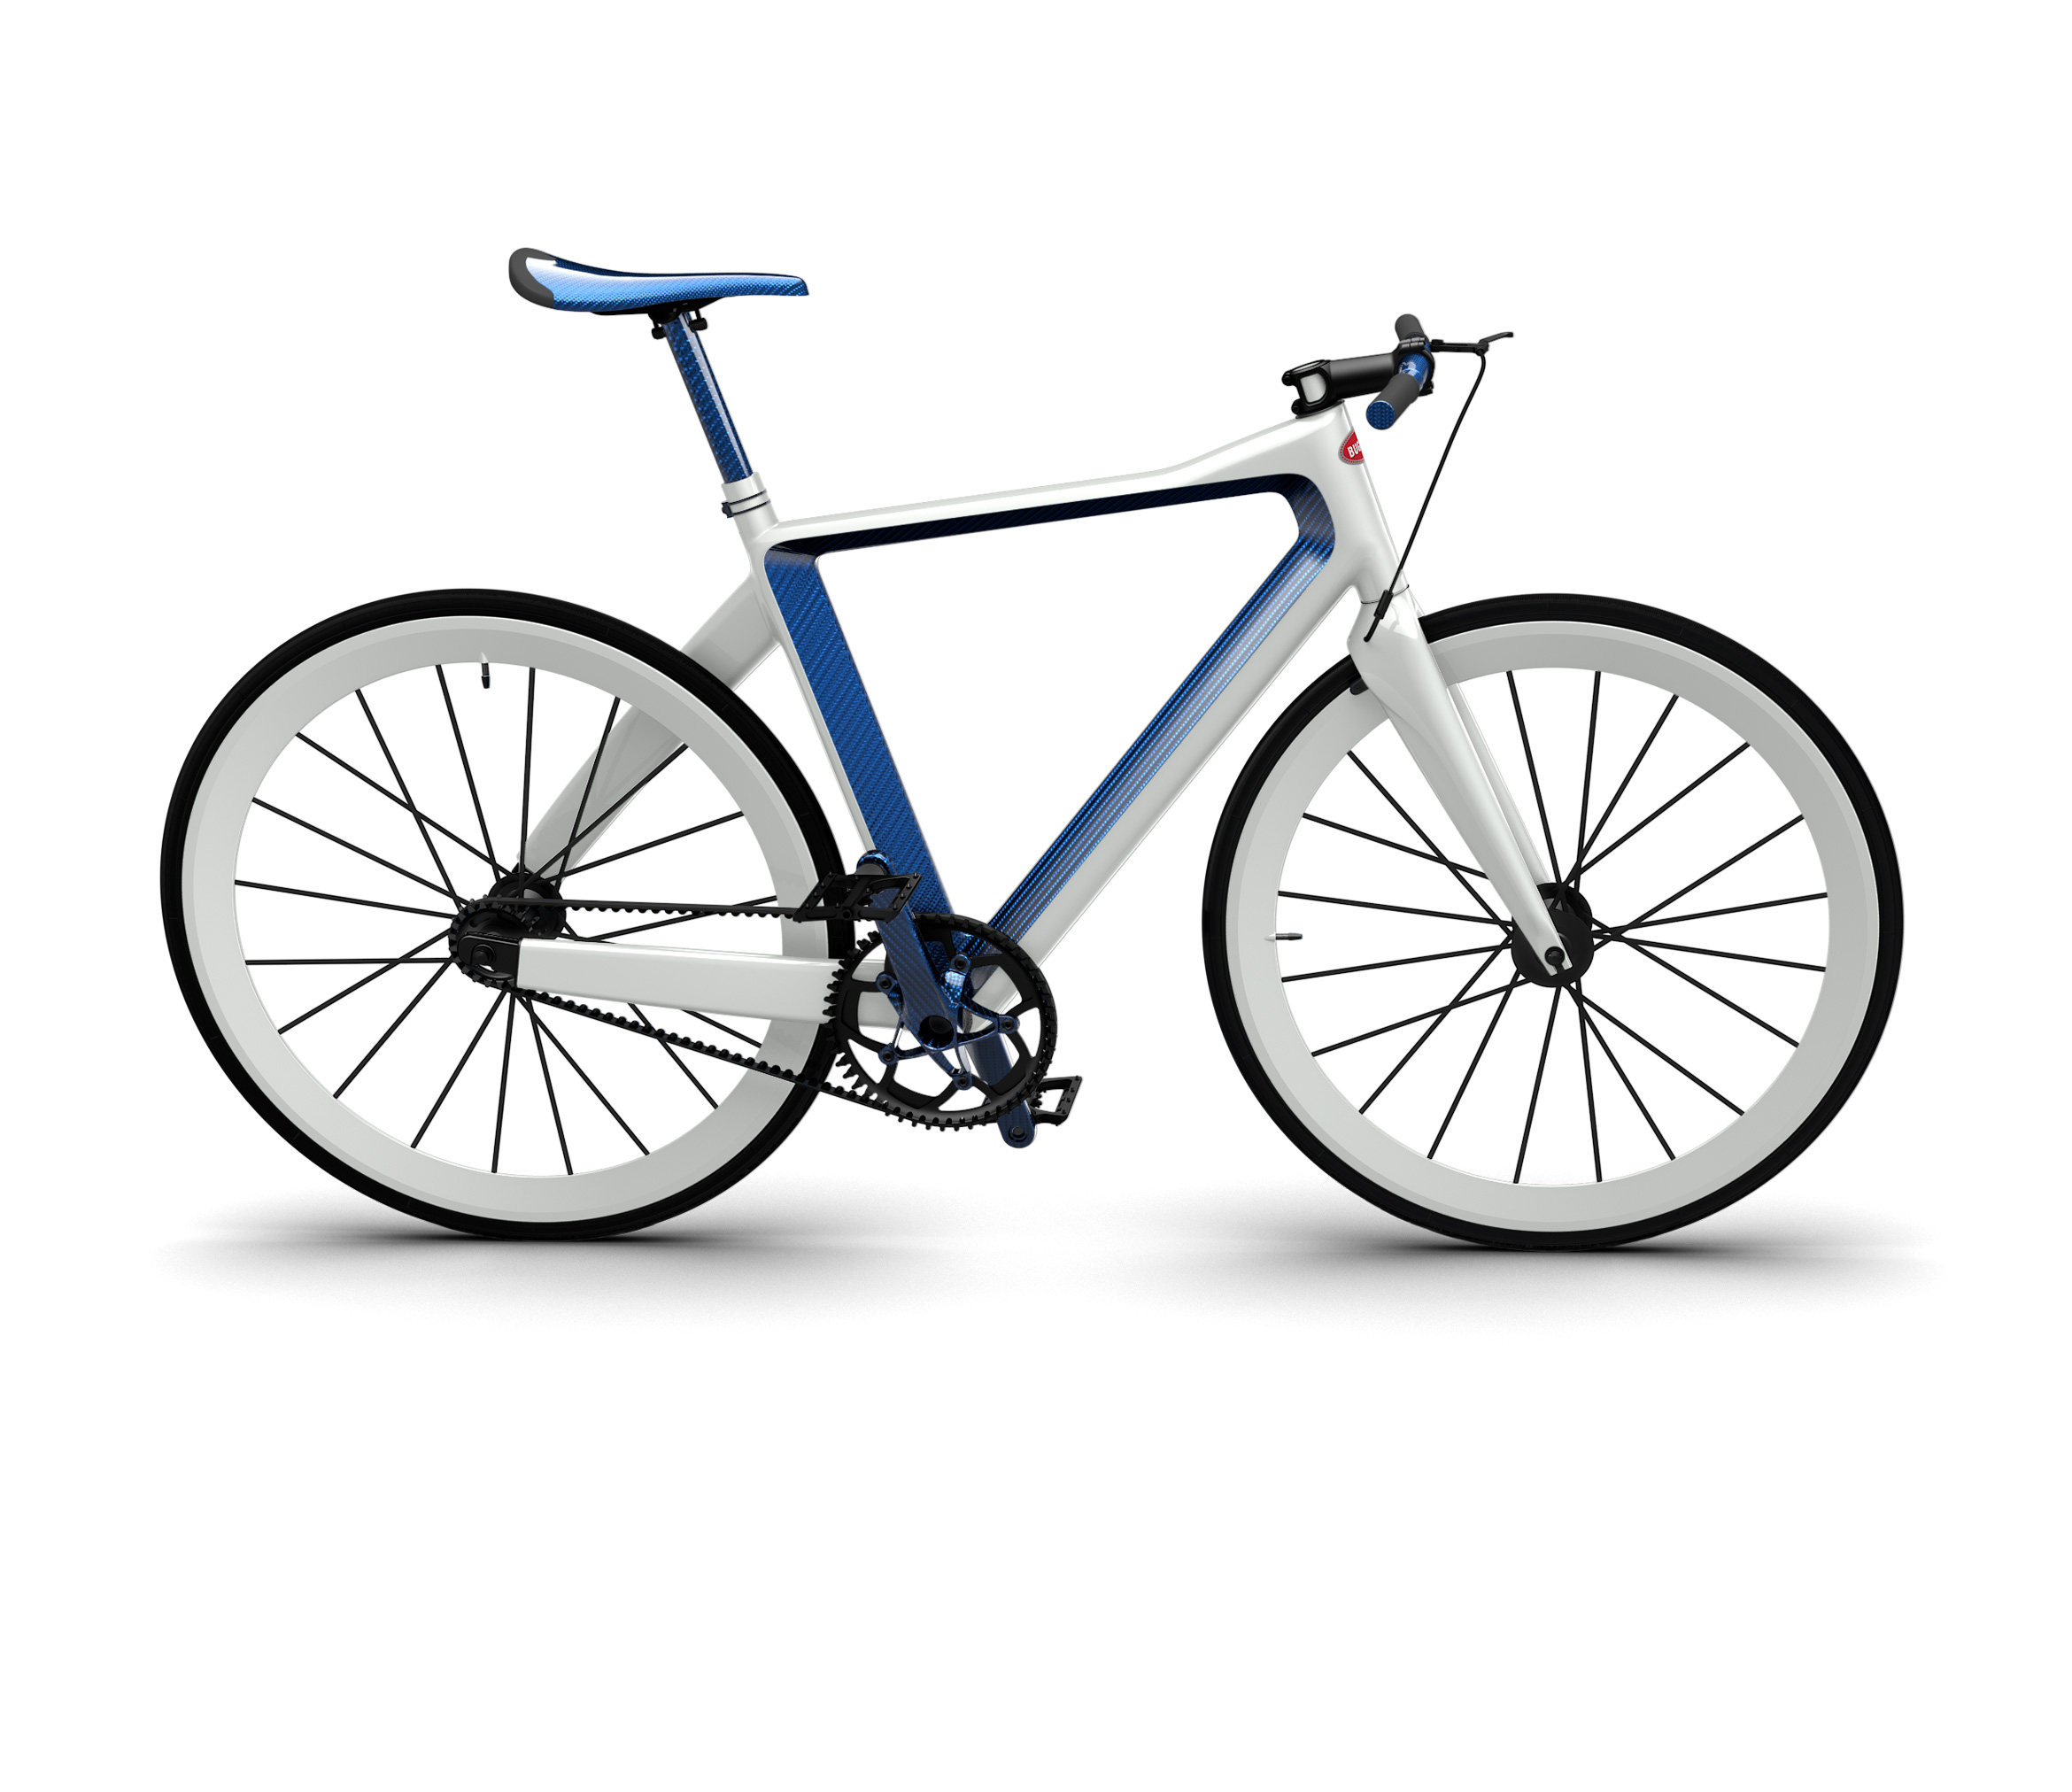 PG Bugatti bicycle (19)